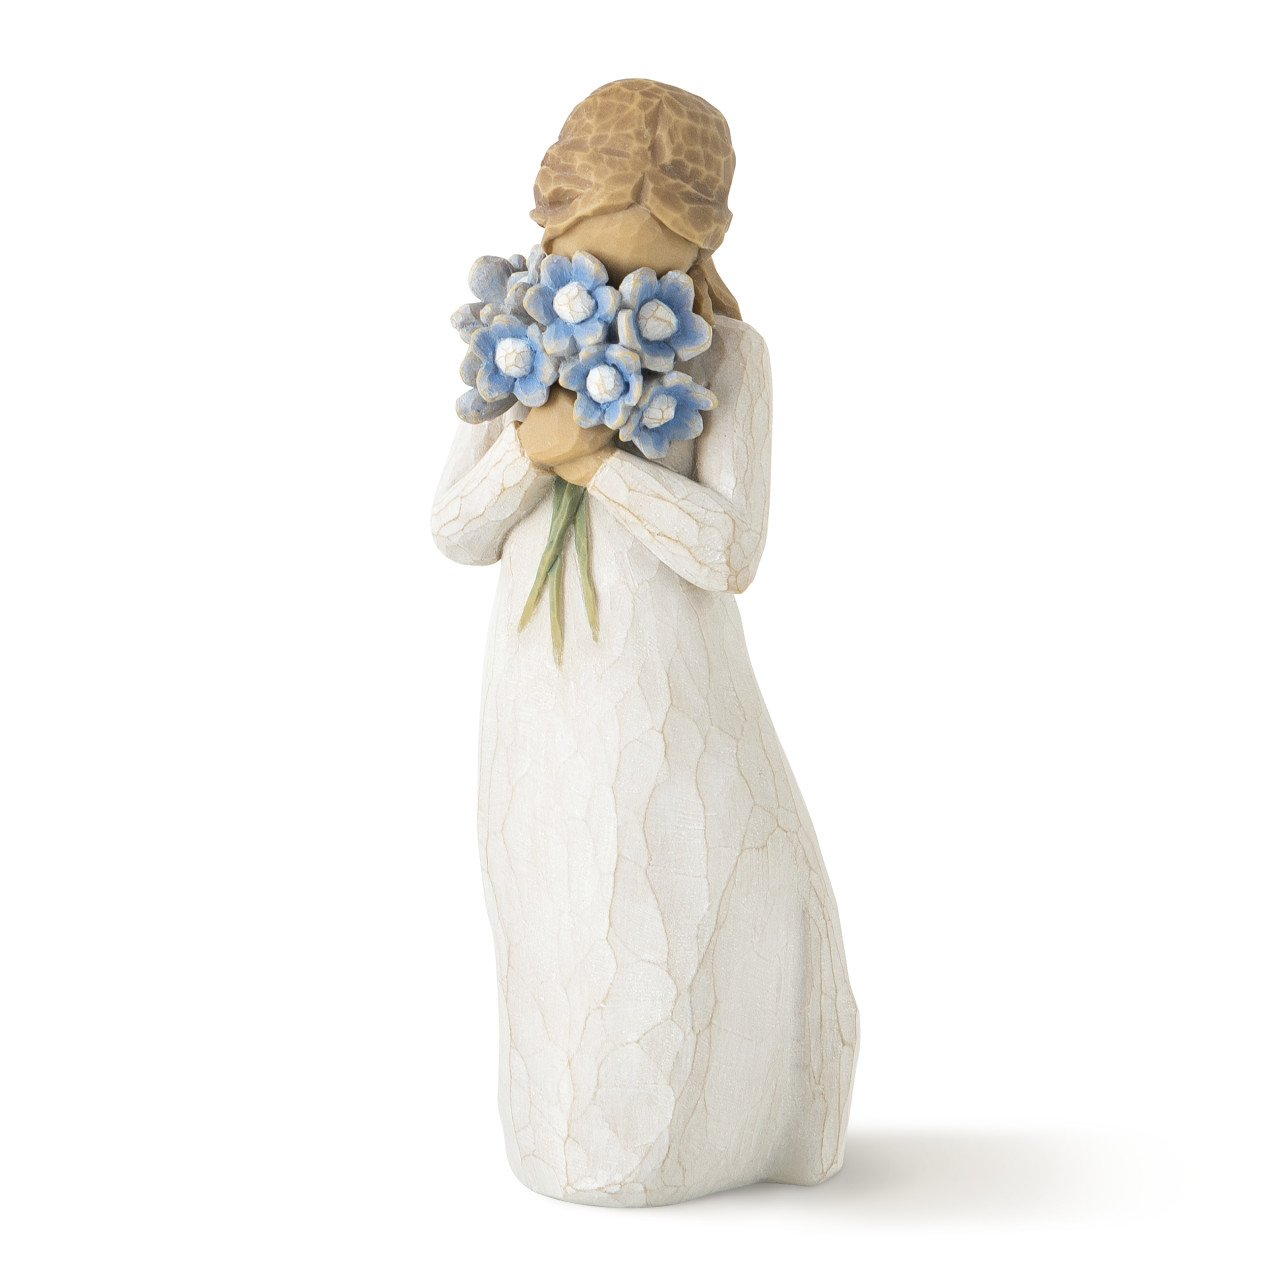 Willow Tree hand-painted sculpted figure, Forget-me-not